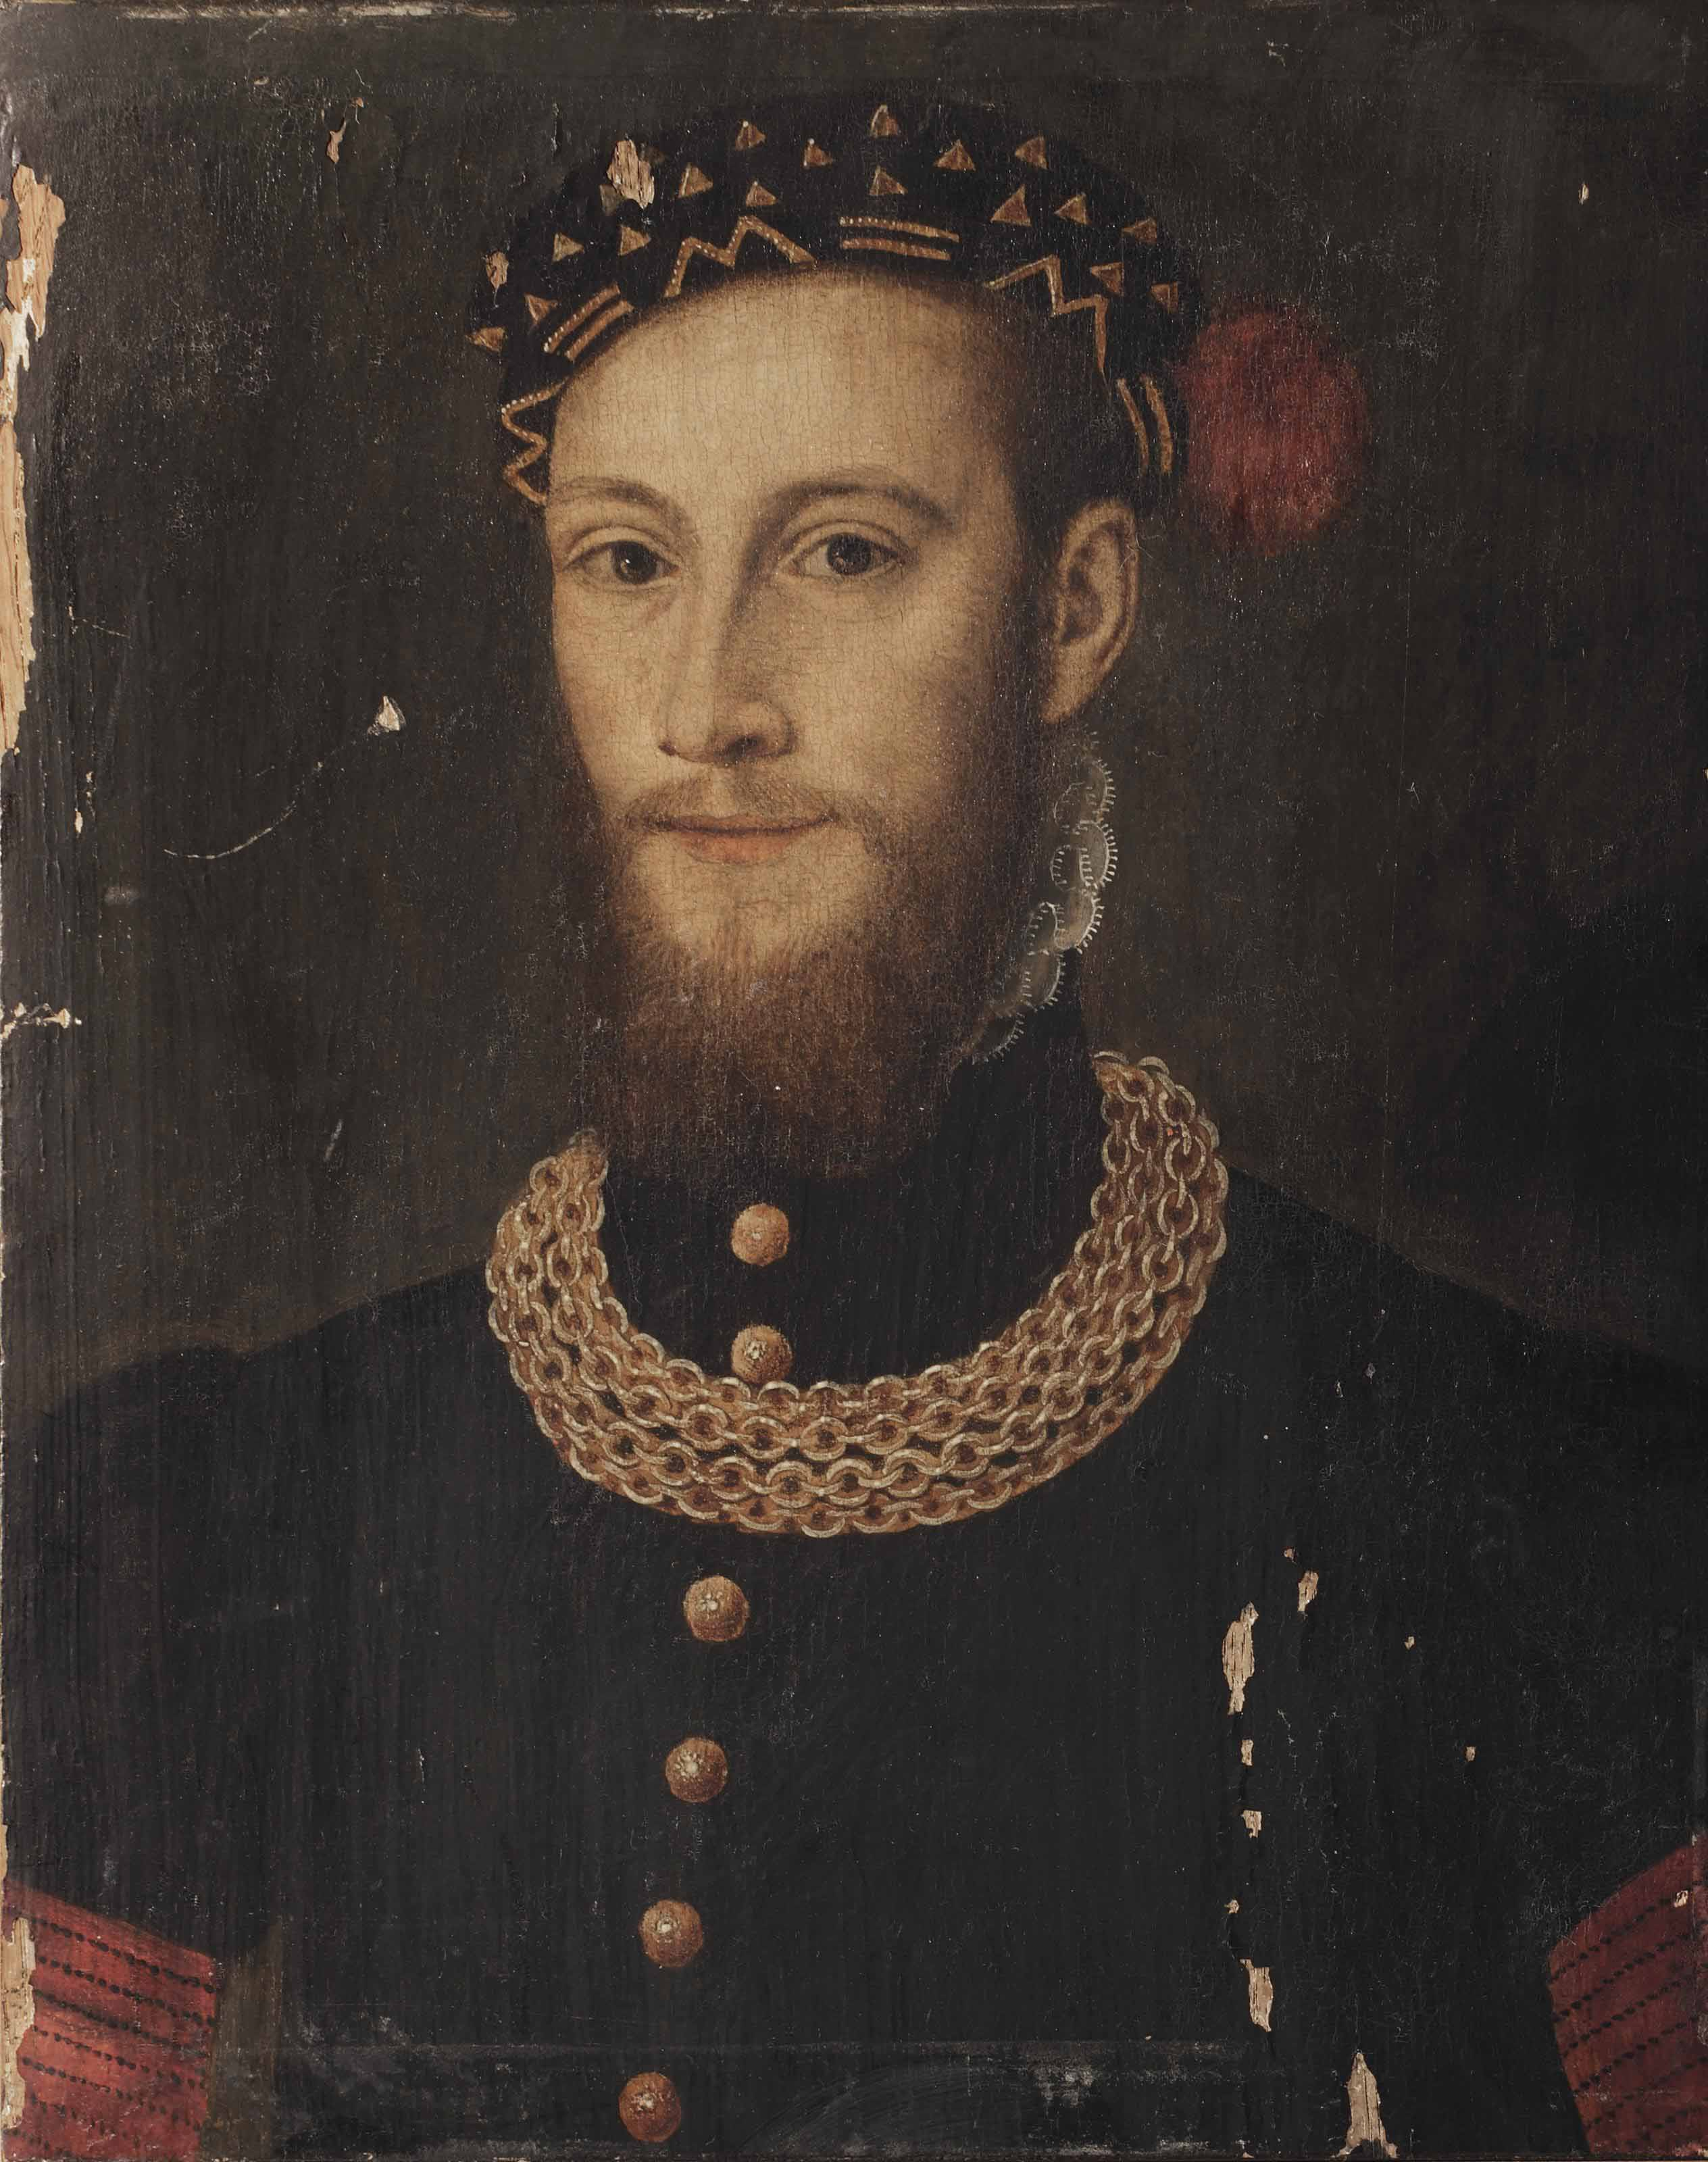 Portrait of a bearded gentleman, bust-length, in a black coat with gold buttons and chain, wearing a black feathered cap with gold embroidery